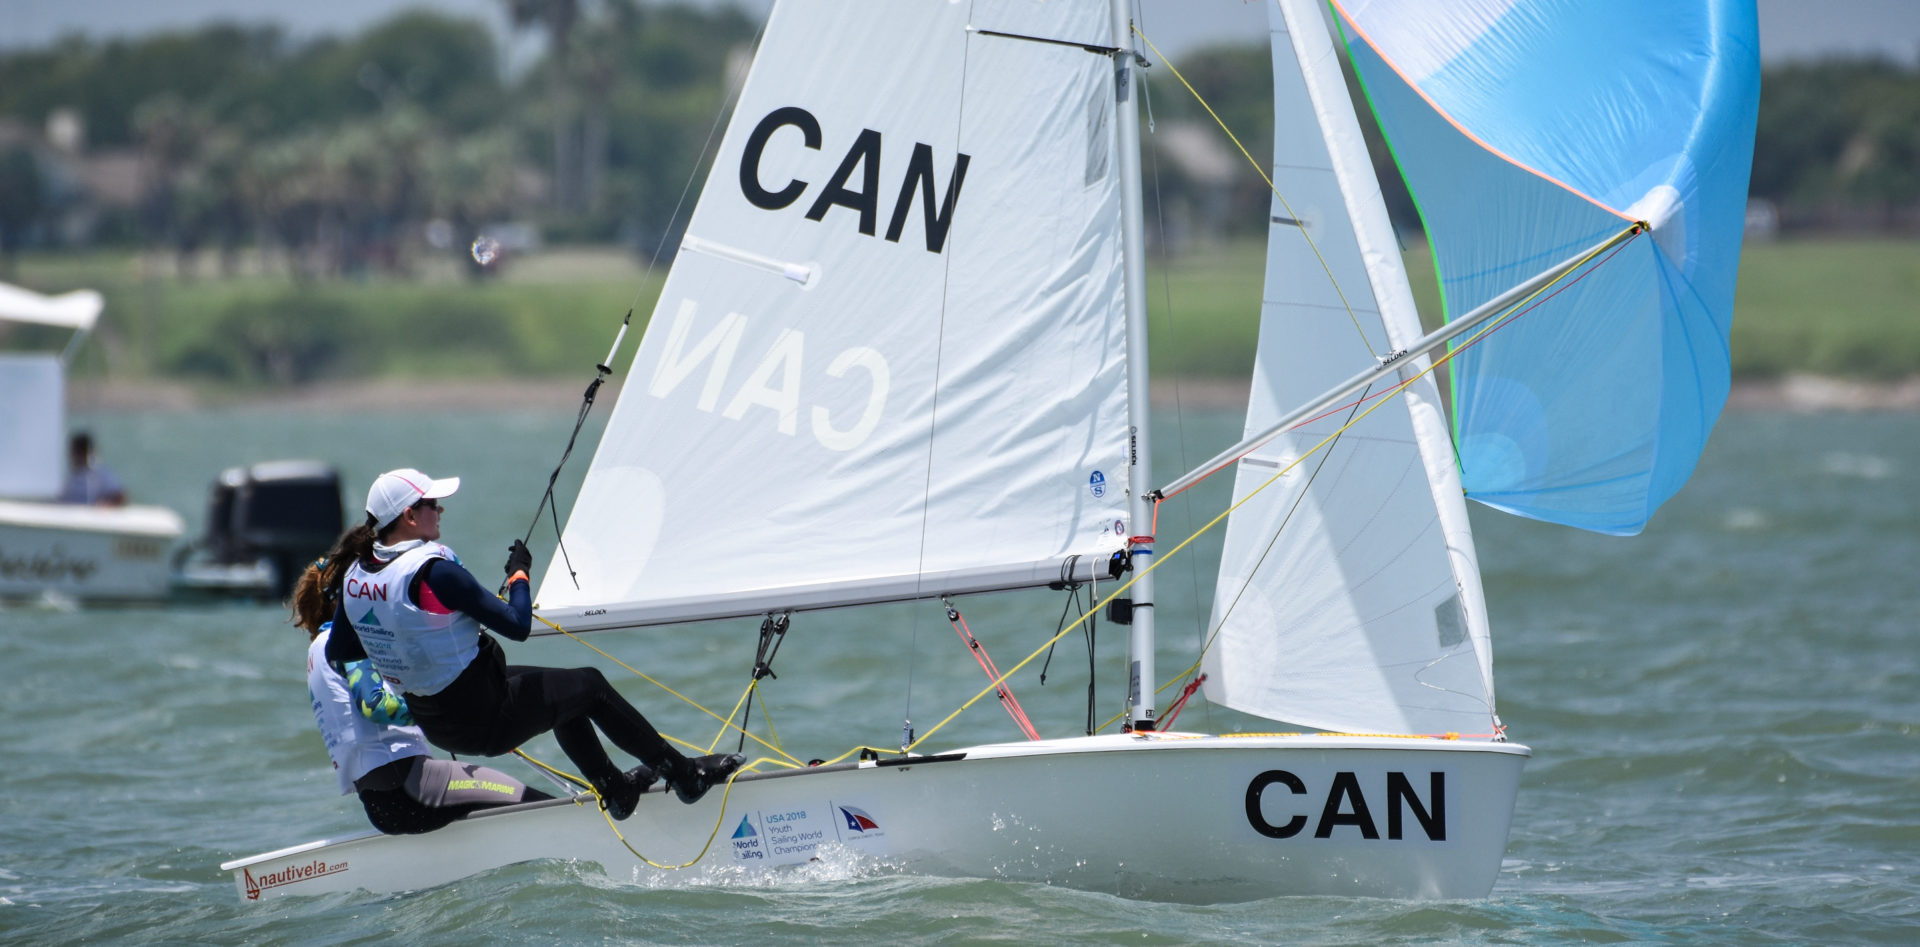 The 48th edition of the Youth Sailing World Championships will see 382 sailors from 66 nations racing in 265 boats across nine disciplines. Corpus Christi, Texas, USA is hosting the 2018 Youth Worlds from 14-21 July 2018.  Tate Howell CANTH19 Madeline Gillis CANMG39 Womens 420  World Sailing James Tomlinson